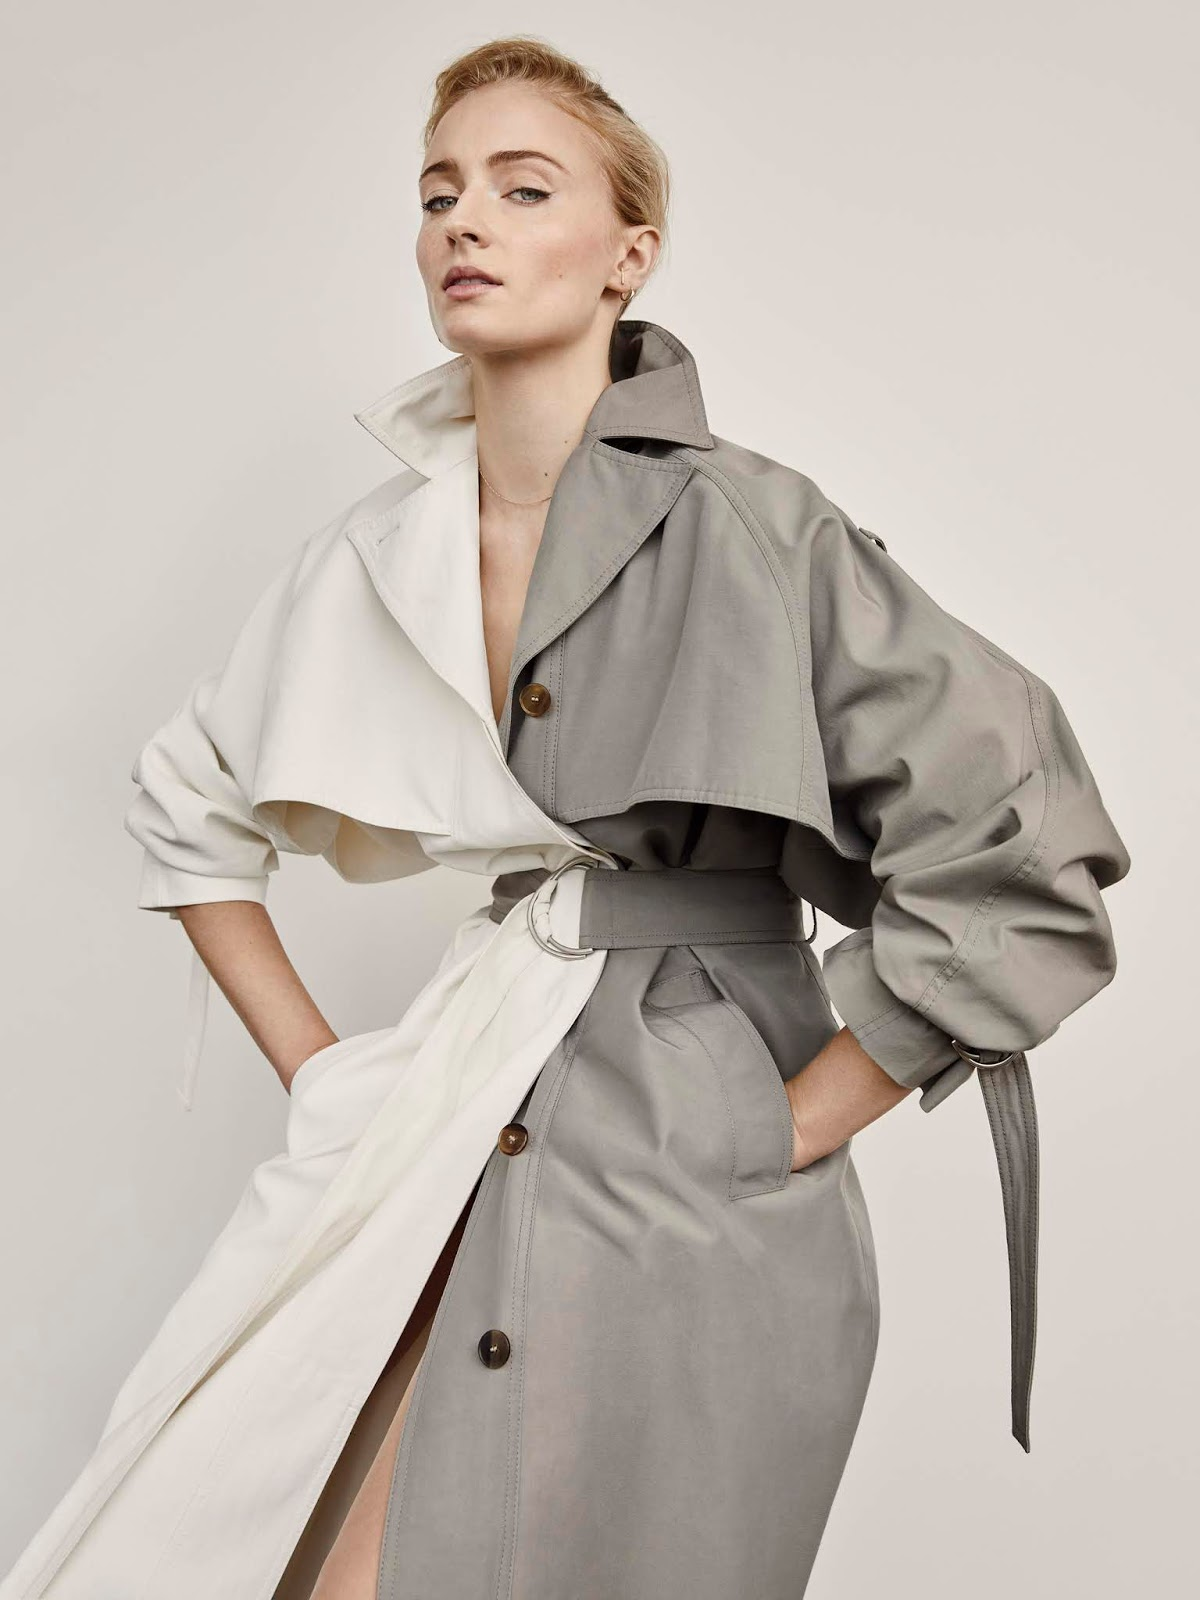 Sophie Turner wears Givenchy color-blocked trench lensed by Yelena Yemchuk.